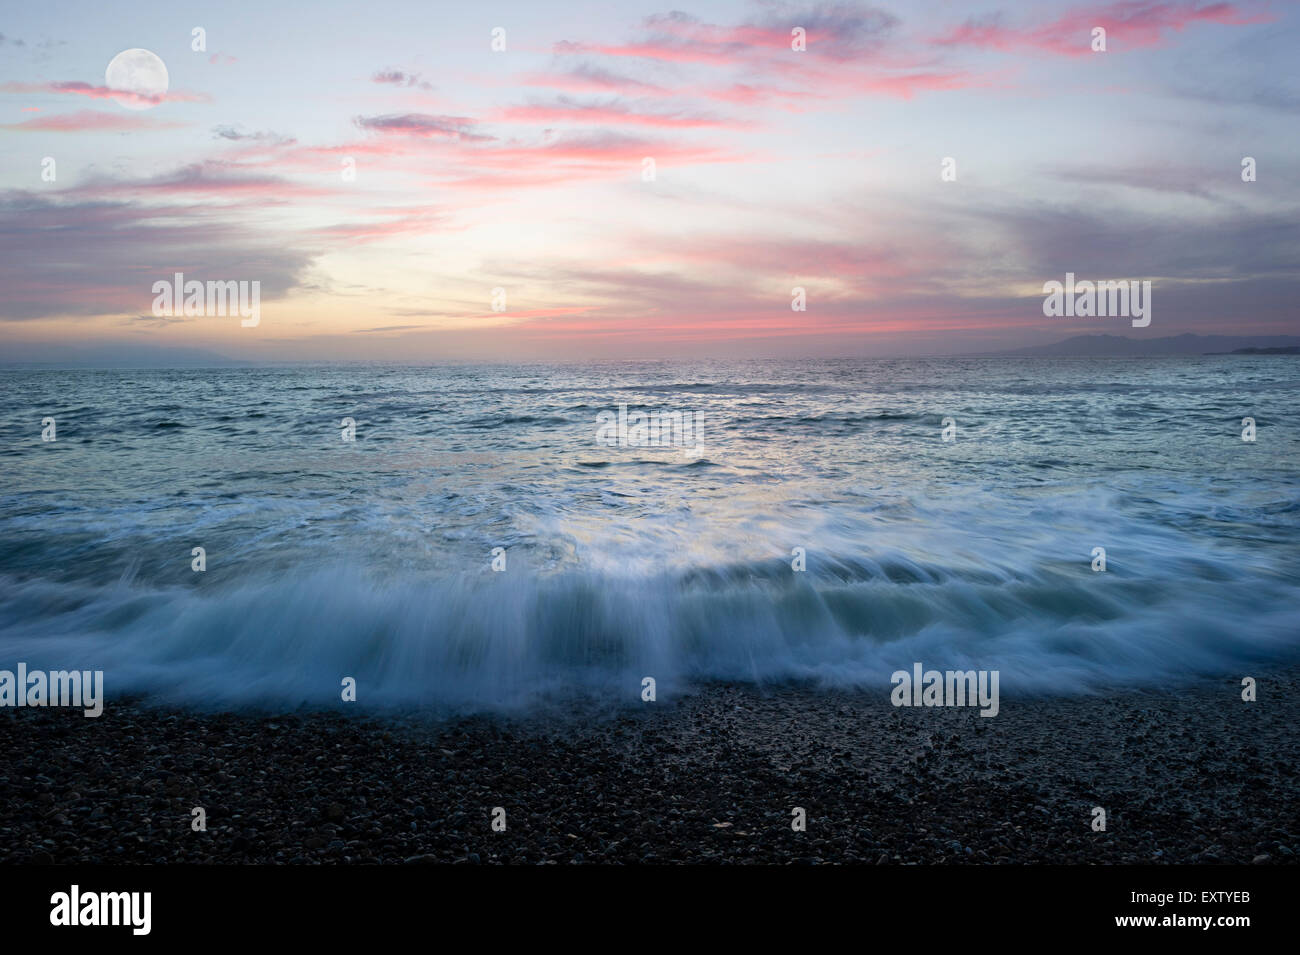 Ocean landscape with waves breaking on beach and moon clouds. Stock Photo